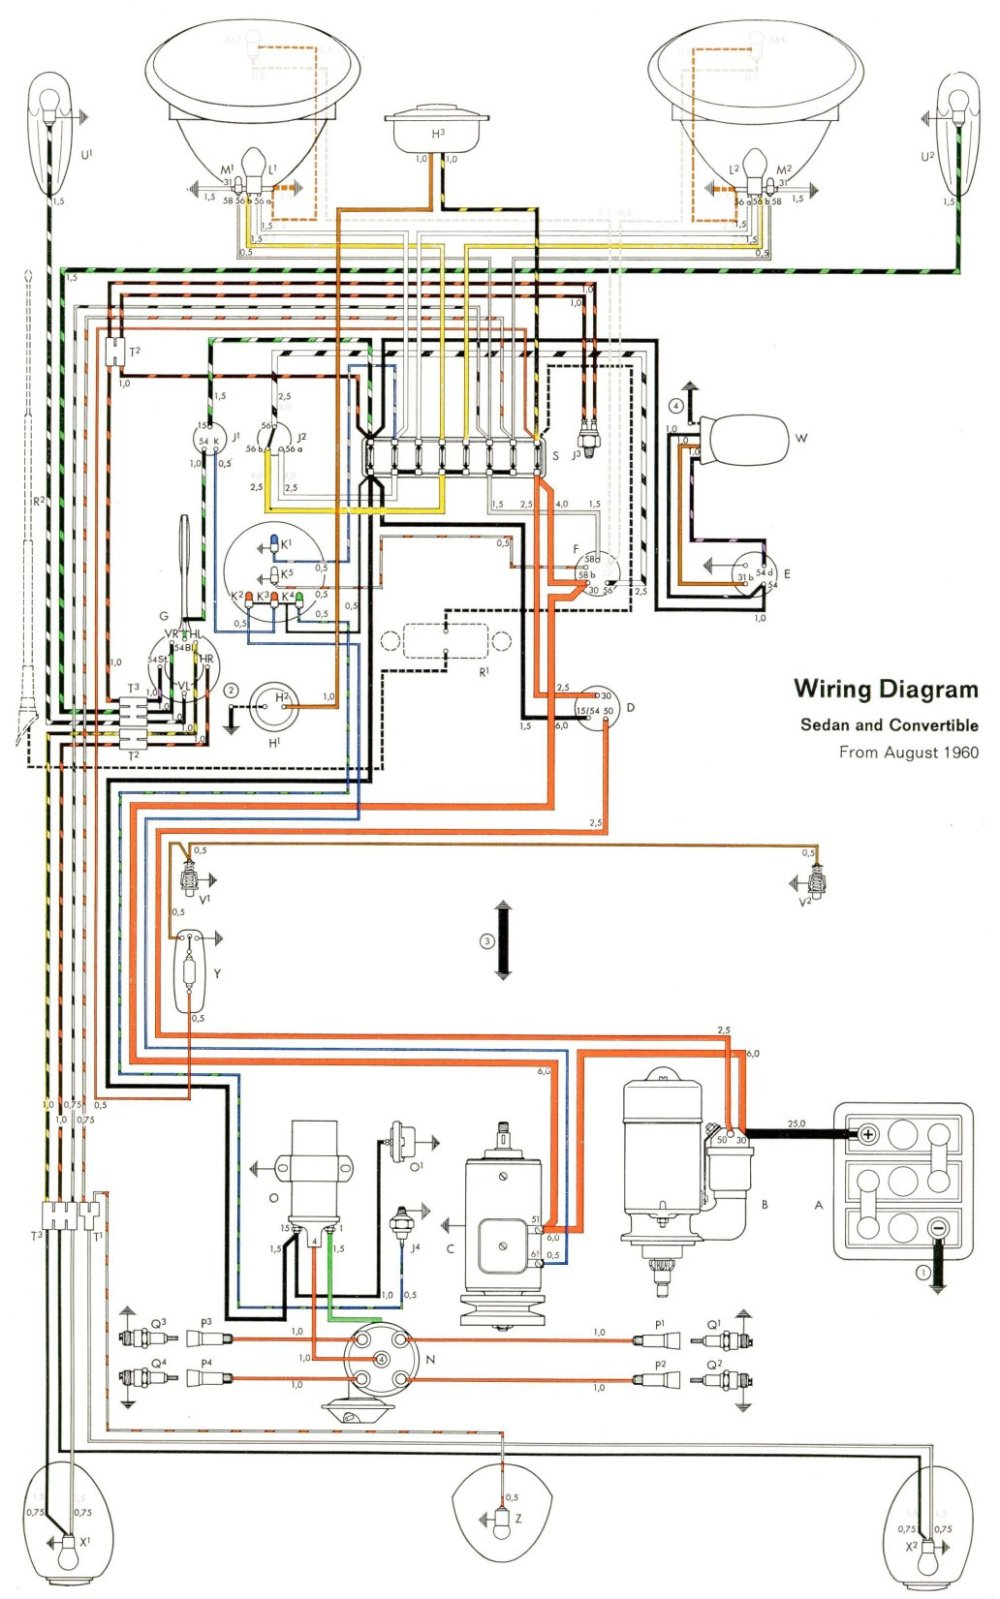 medium resolution of mga wiring diagram for 1960